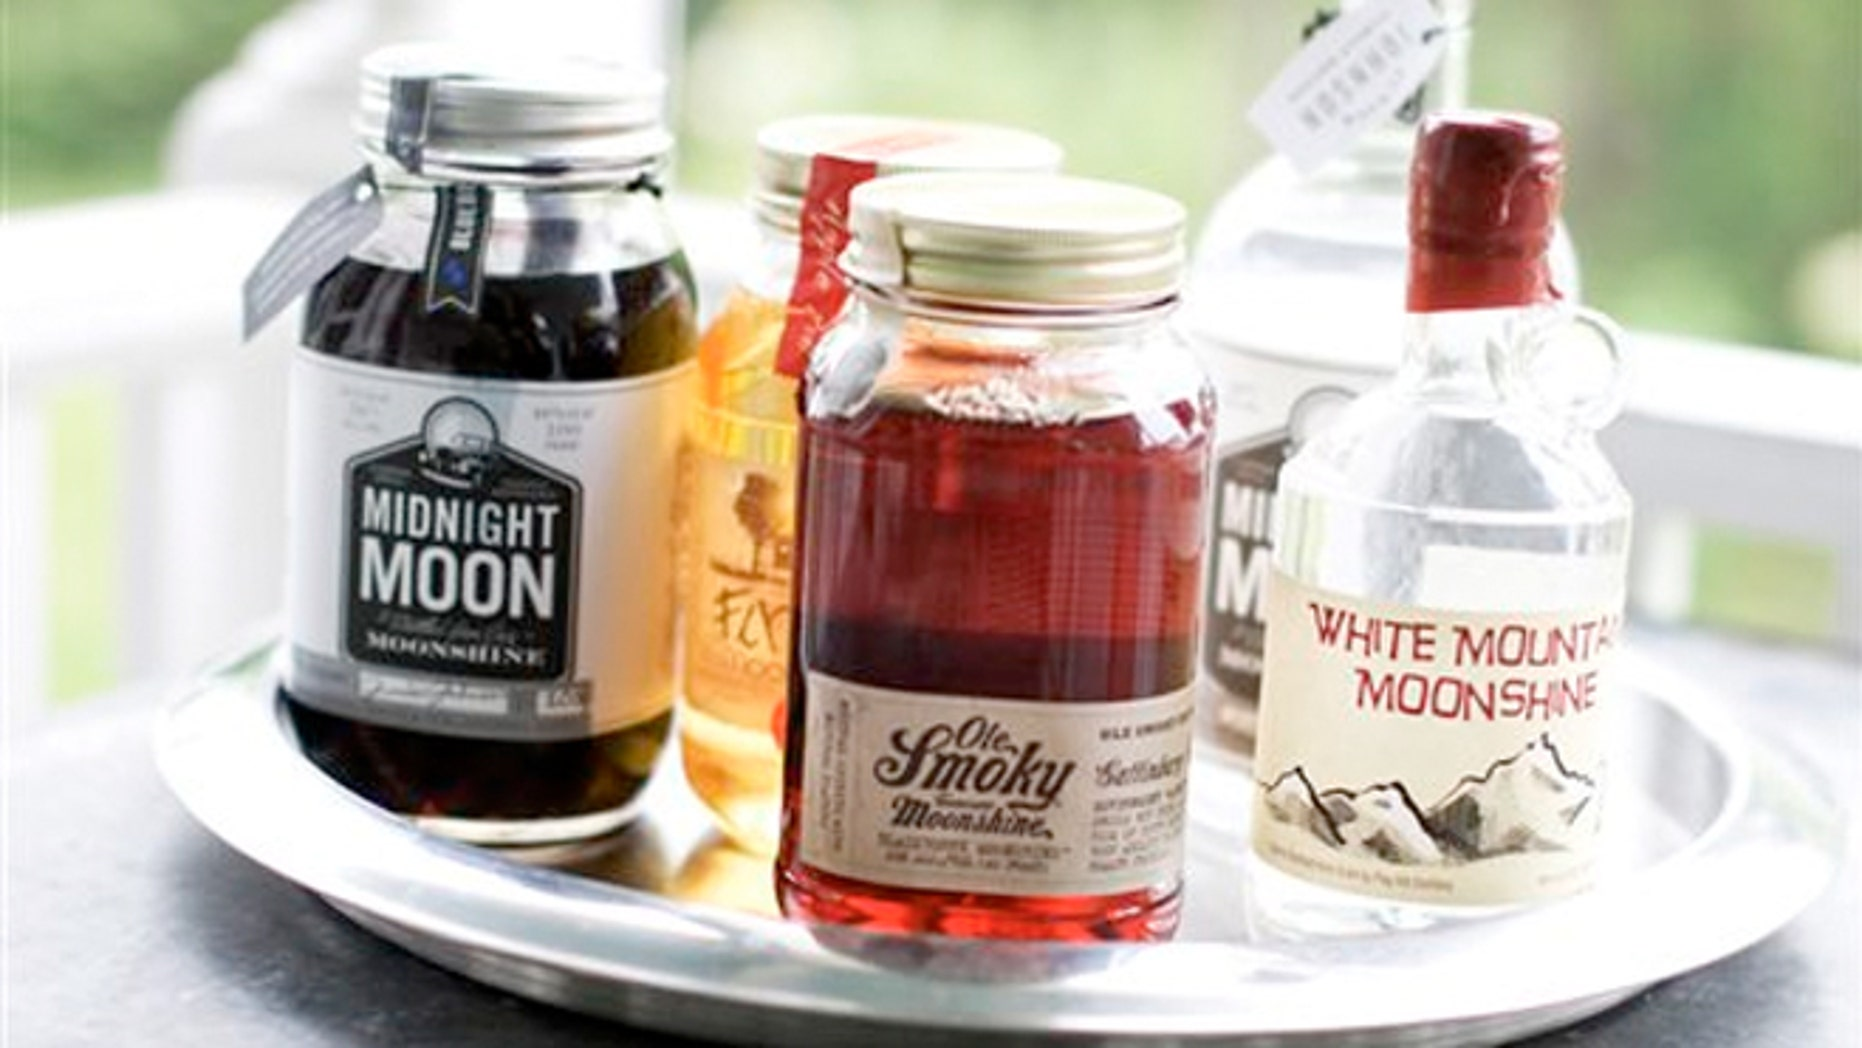 June 10, 2013: Midnight Moon Blueberry, FireFly Moonshine Apple Pie Flavor, Ole Smoky Tennessee Moonshine Blackberry, Midnight Moon Moonshine, and White Mountain Moonshine are shown in Concord, N.H.